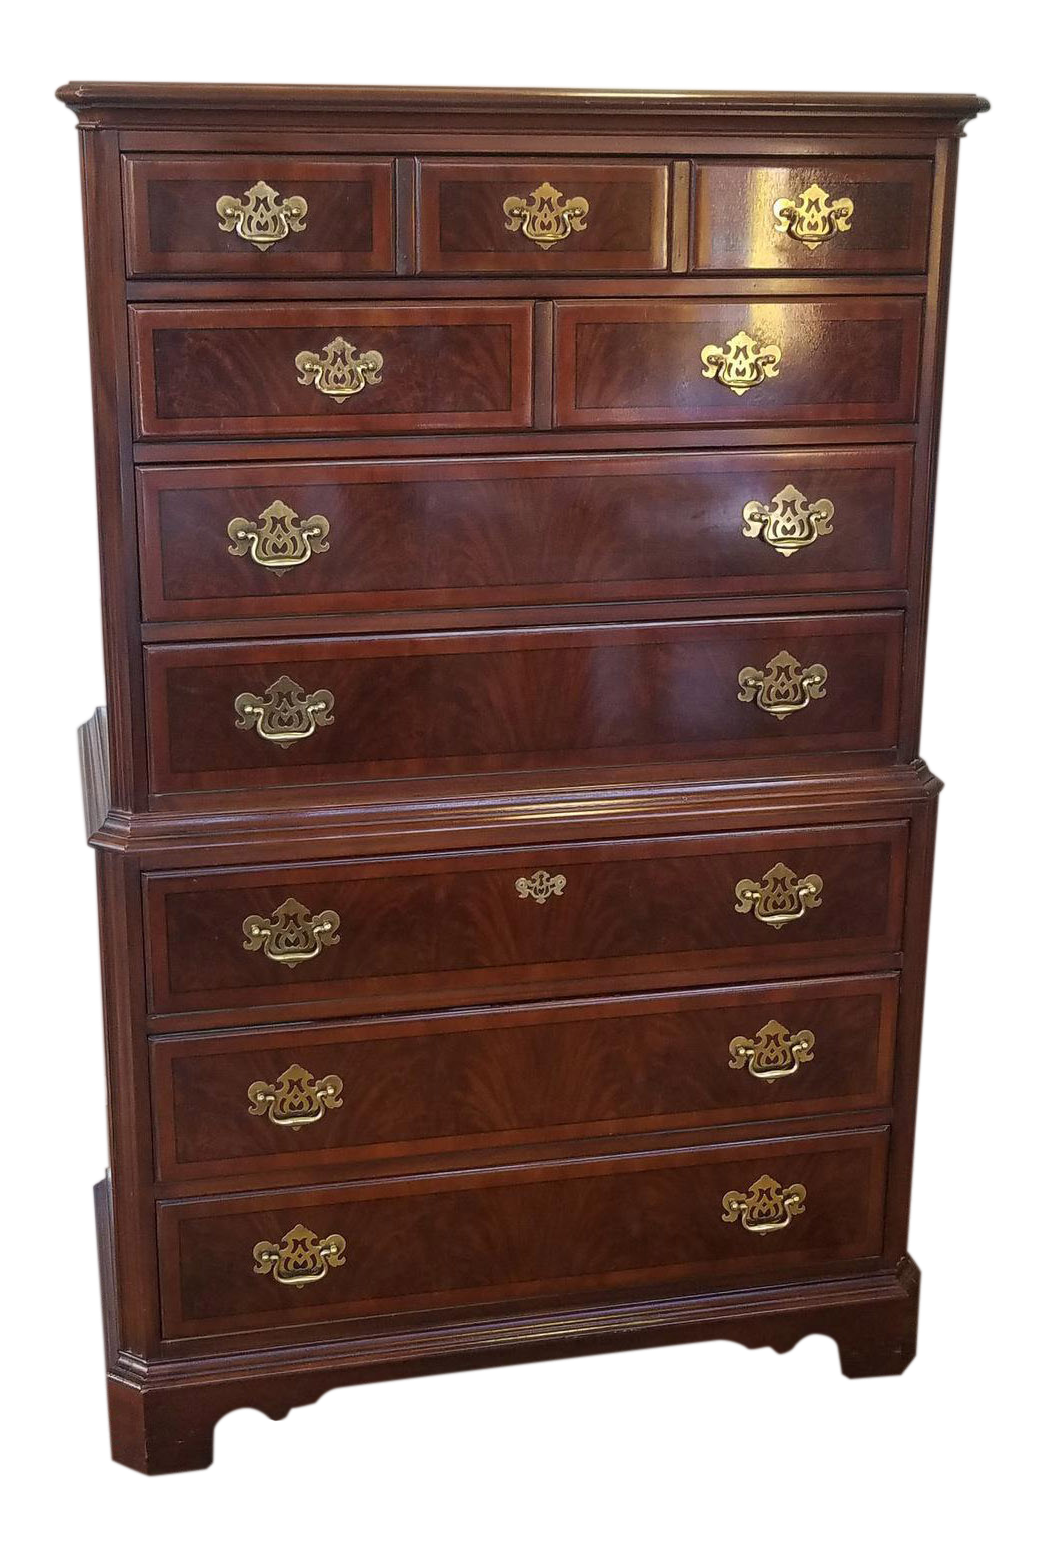 used & vintage drexel furniture for sale at chairish